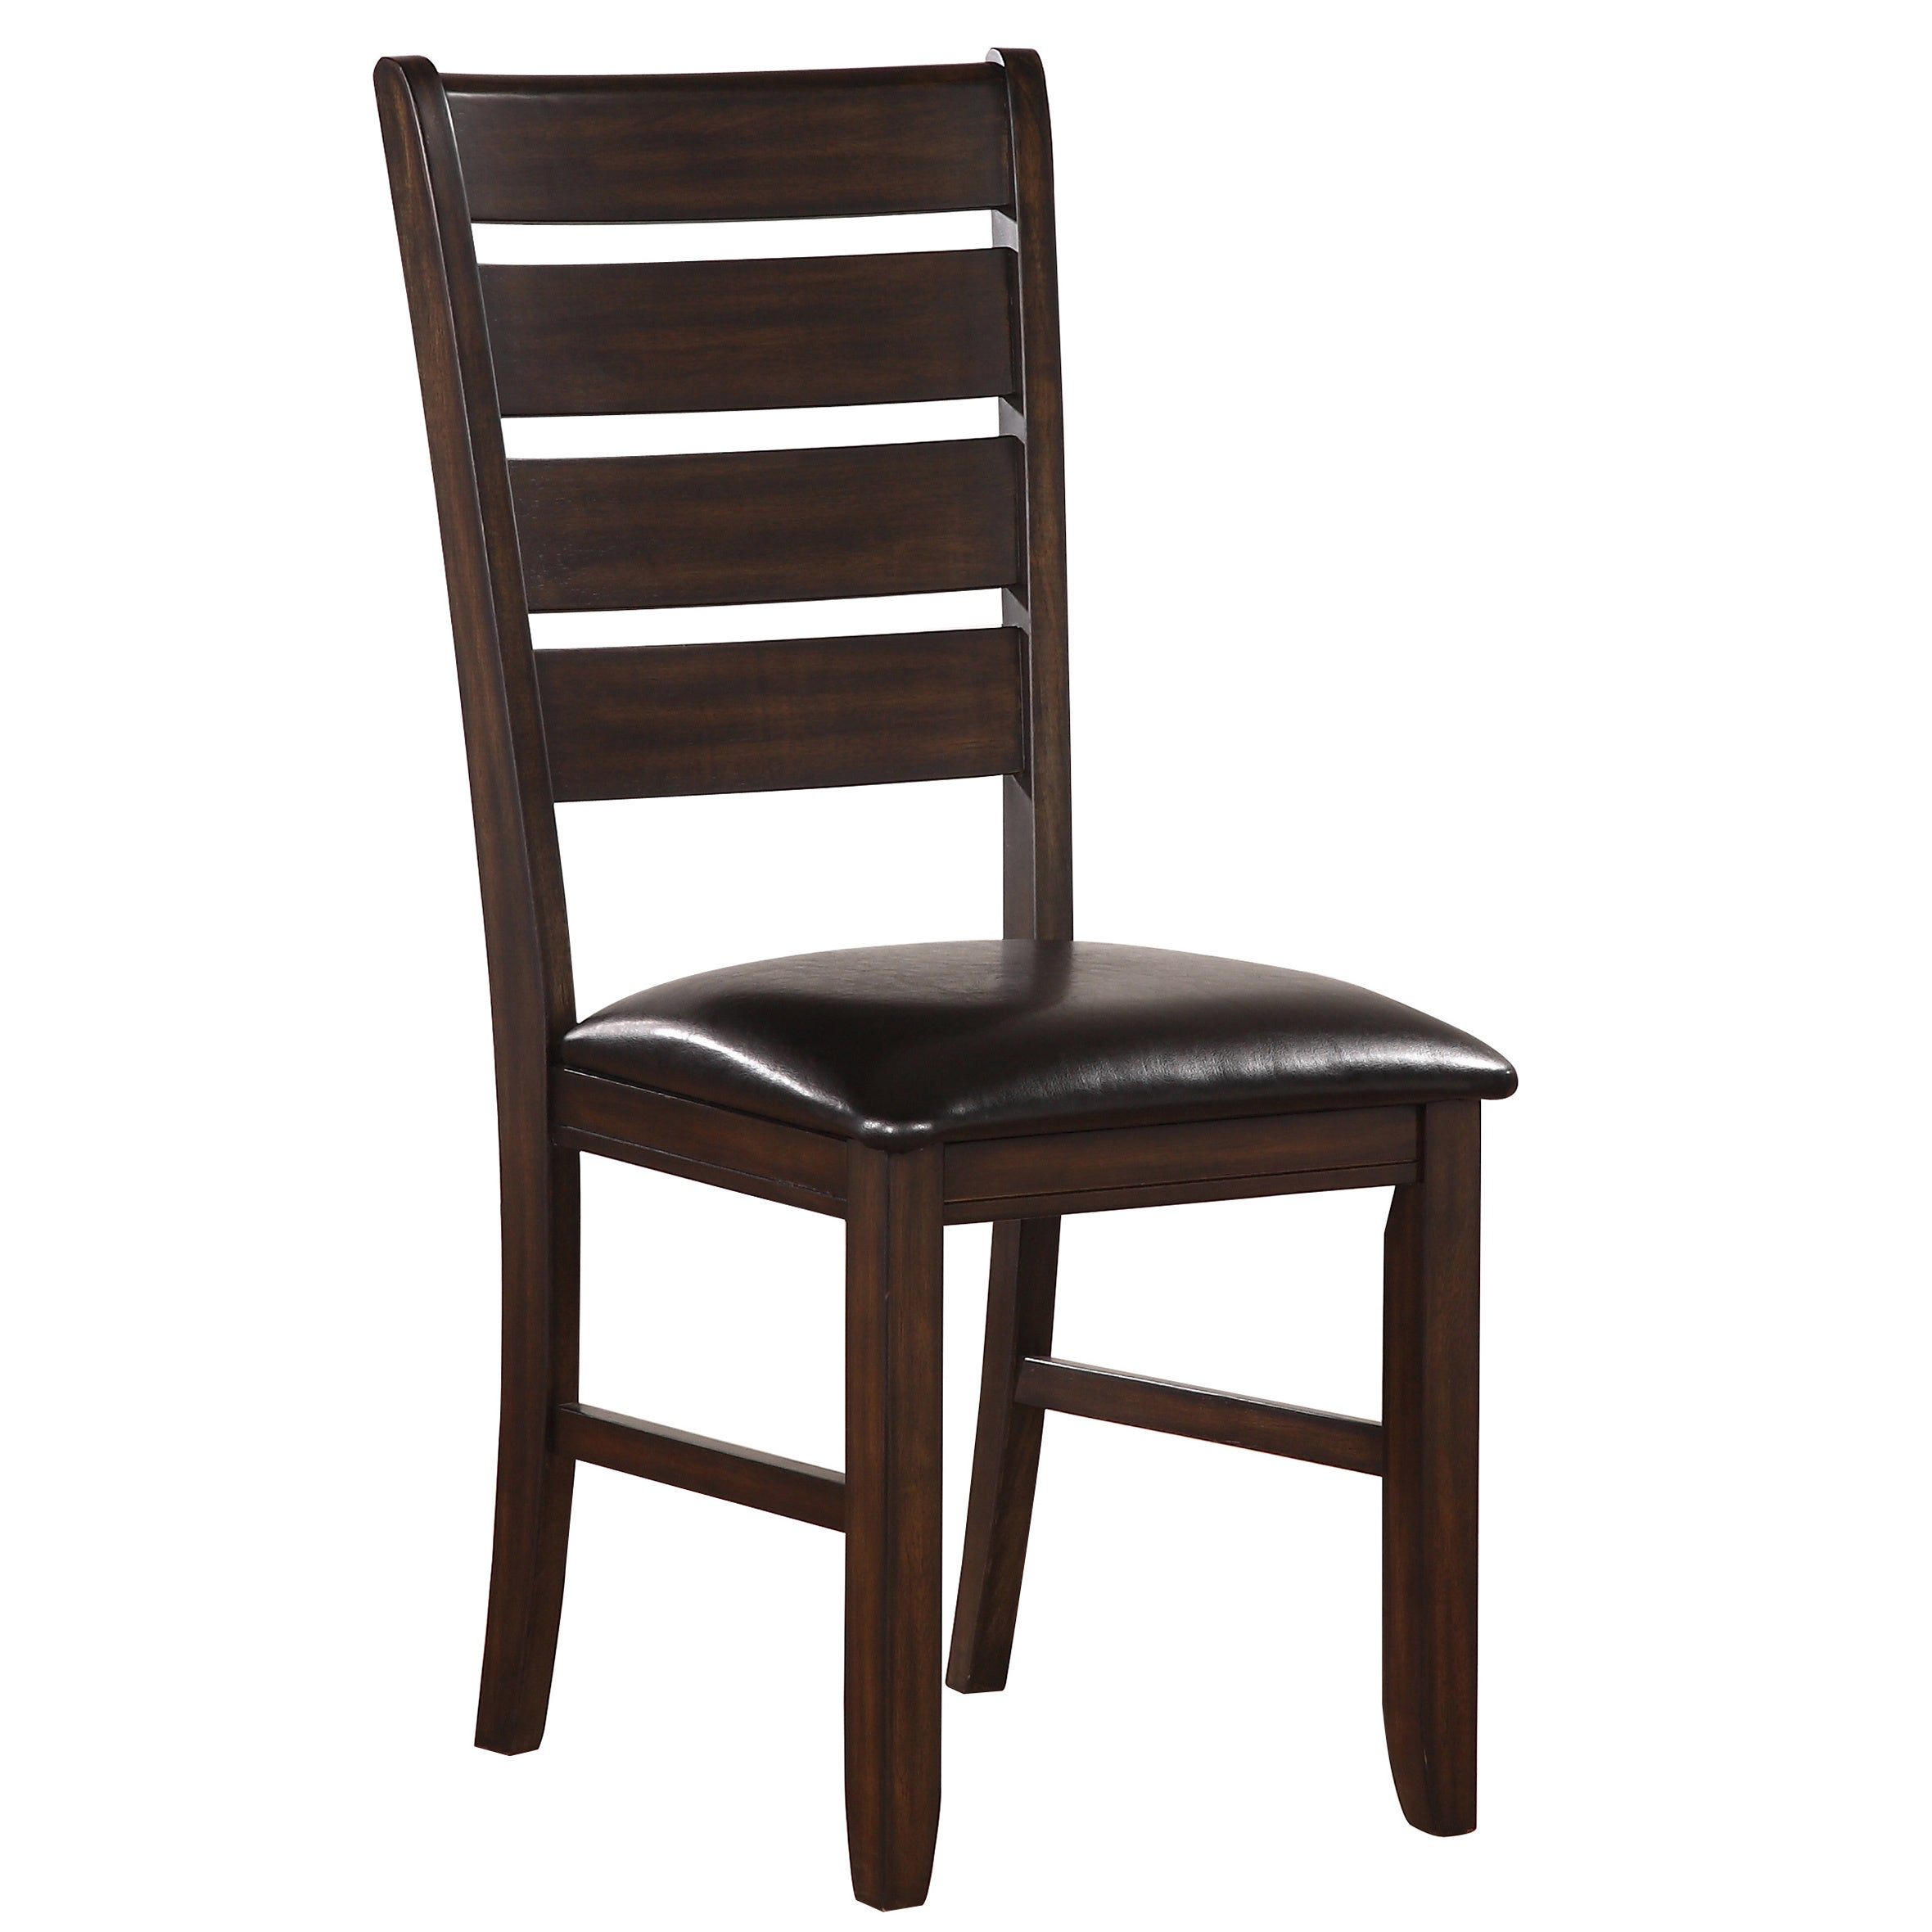 Shop acme furniture urbana black and espresso rubberwood dining chair set of 2 free shipping today overstock com 14370353